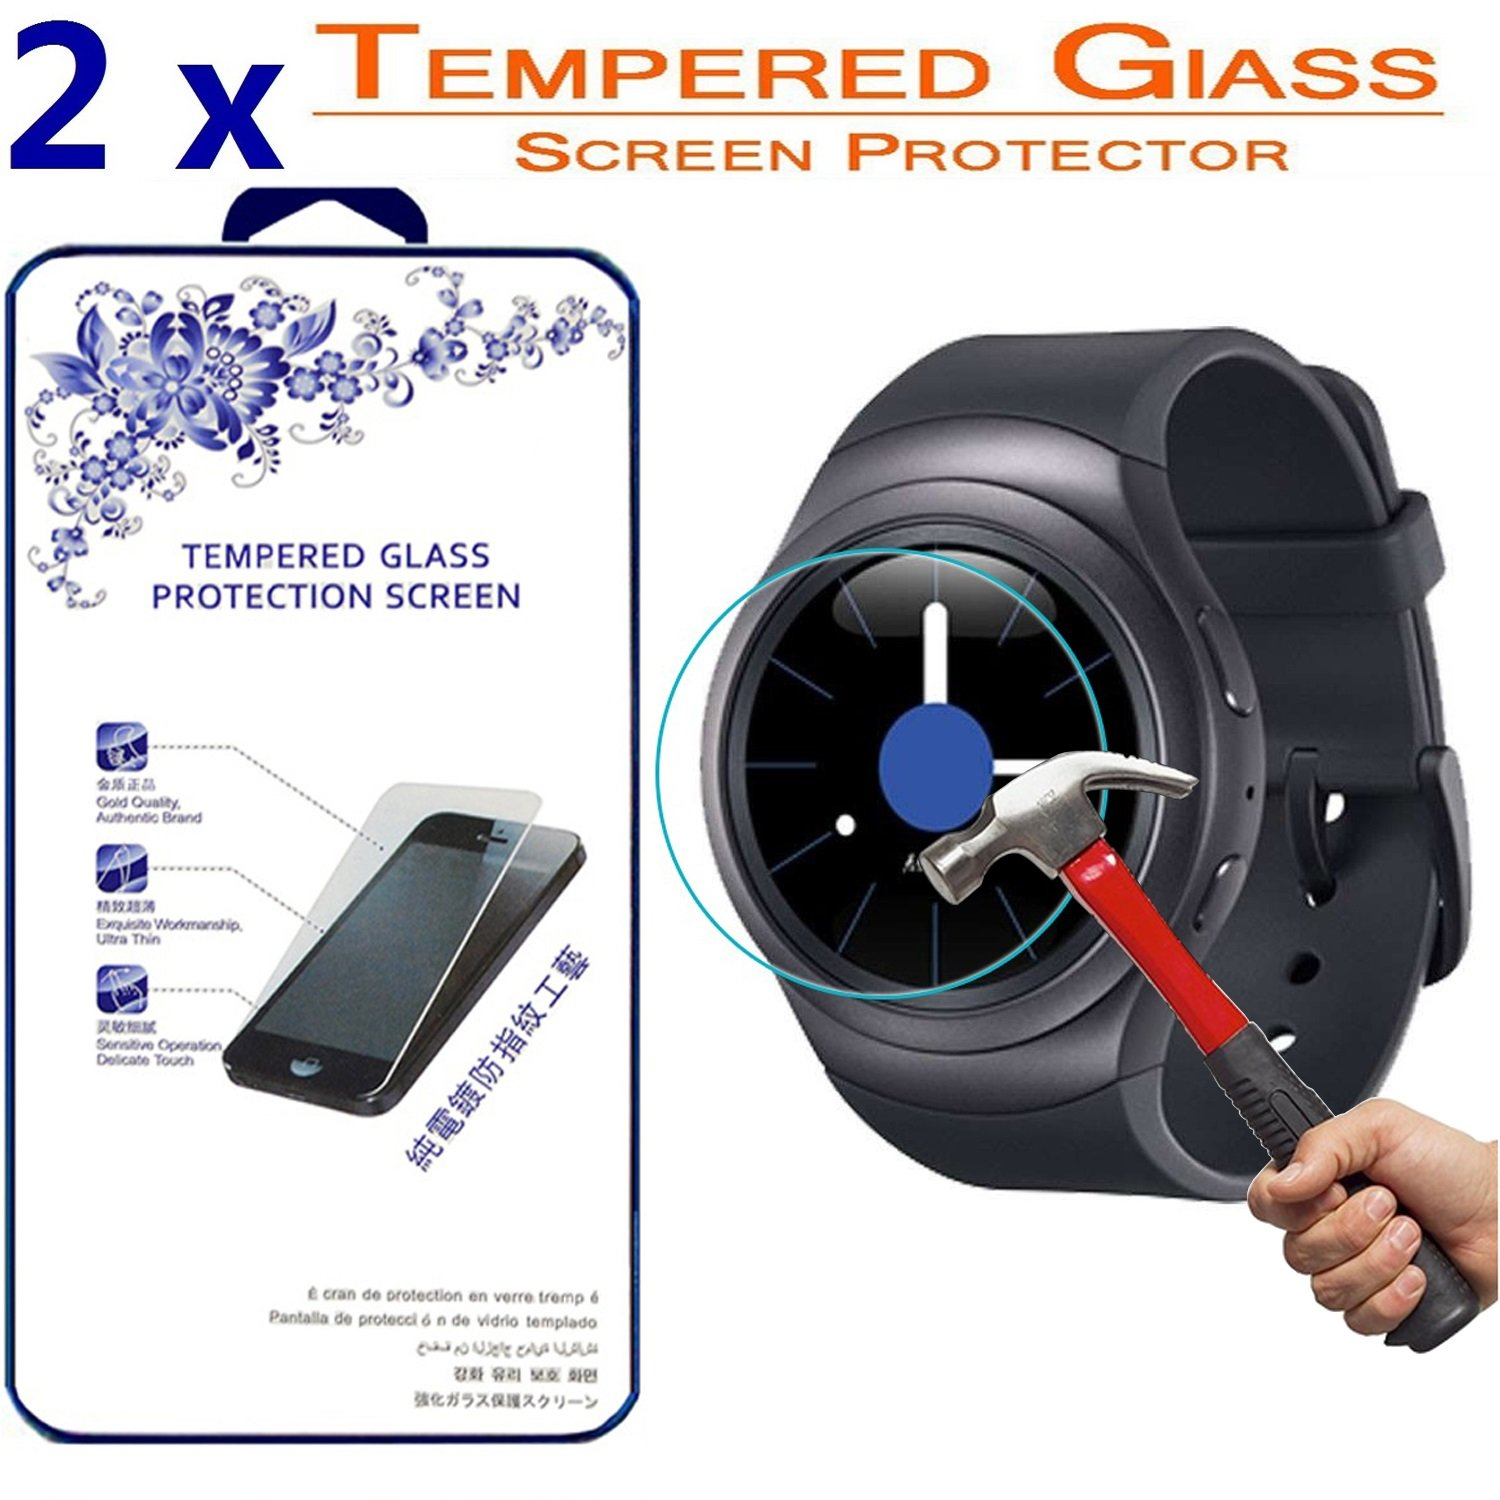 2X Glass Screen Protector for Samsung Galaxy Gear S2 Watch, [2 Pack] Ballistic Tempered Glass Screen Protector ([2 Pack] for Samsung Galaxy Gear S2)